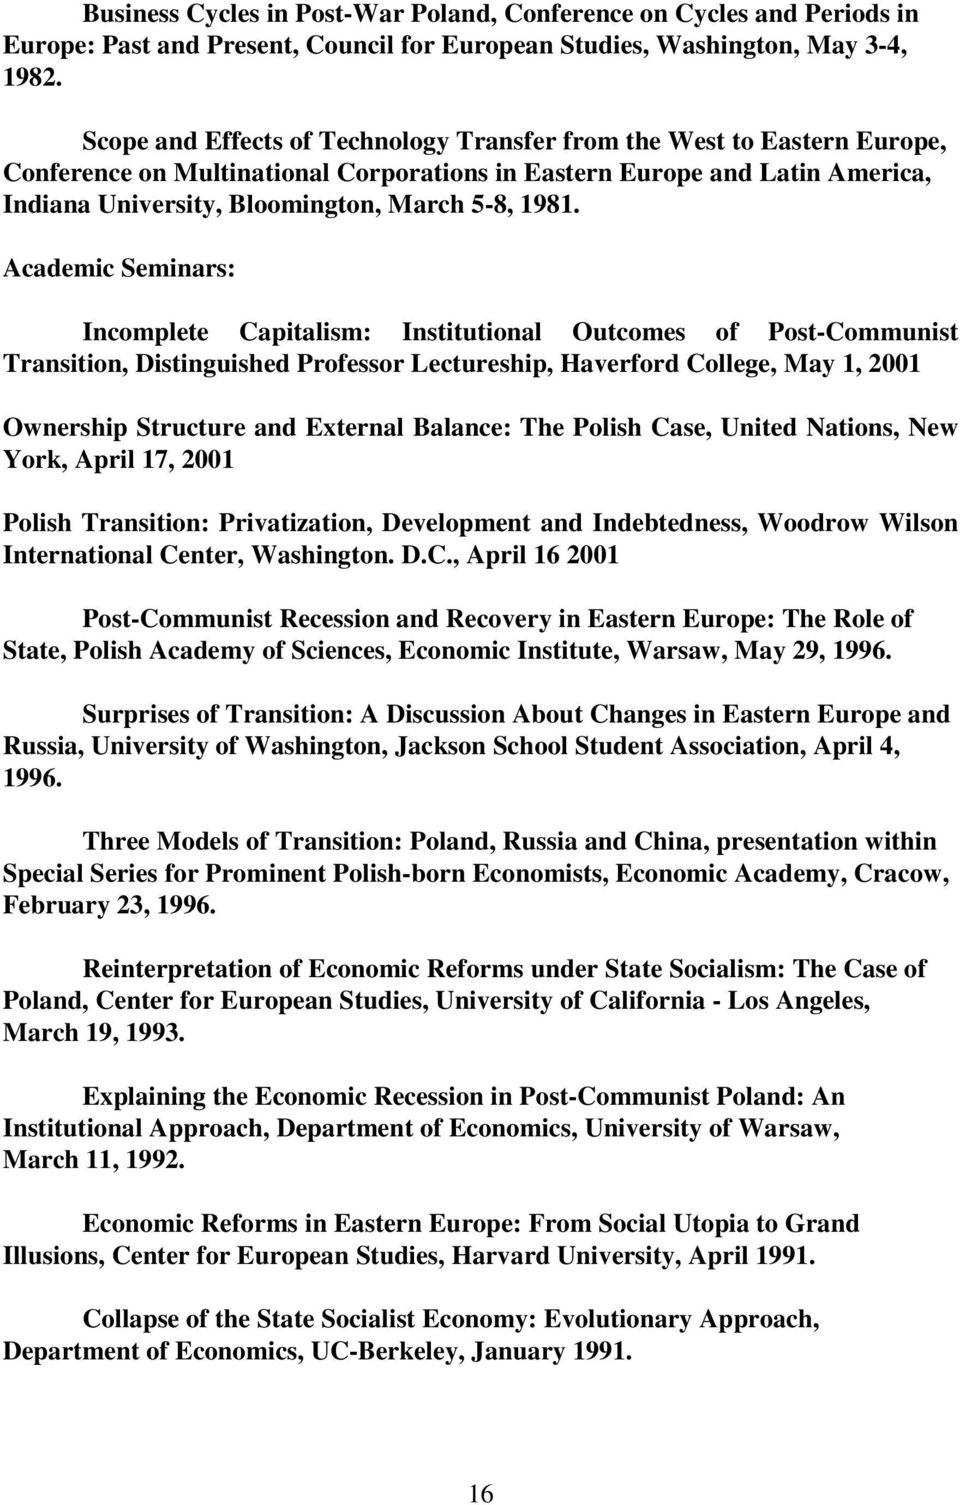 1981. Academic Seminars: Incomplete Capitalism: Institutional Outcomes of Post-Communist Transition, Distinguished Professor Lectureship, Haverford College, May 1, 2001 Ownership Structure and